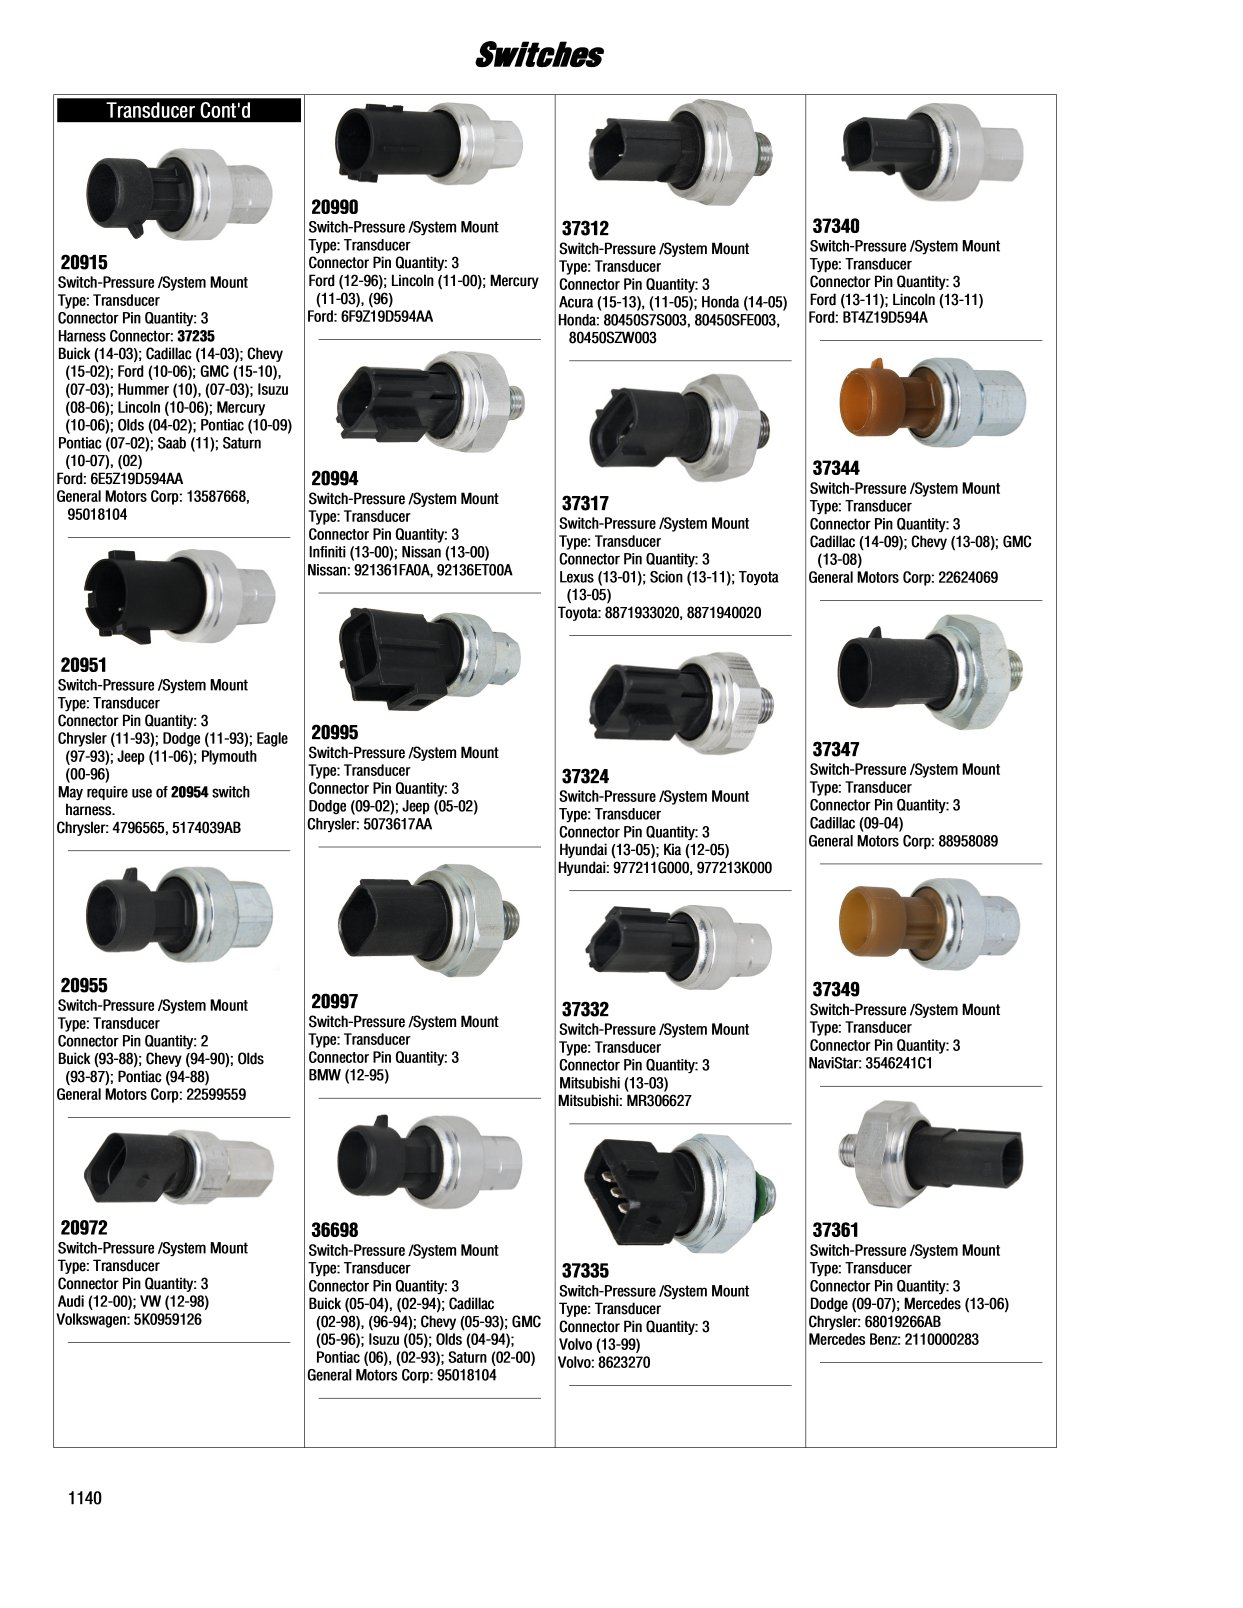 2017 Illustrated Guide - Page 1141 Switches